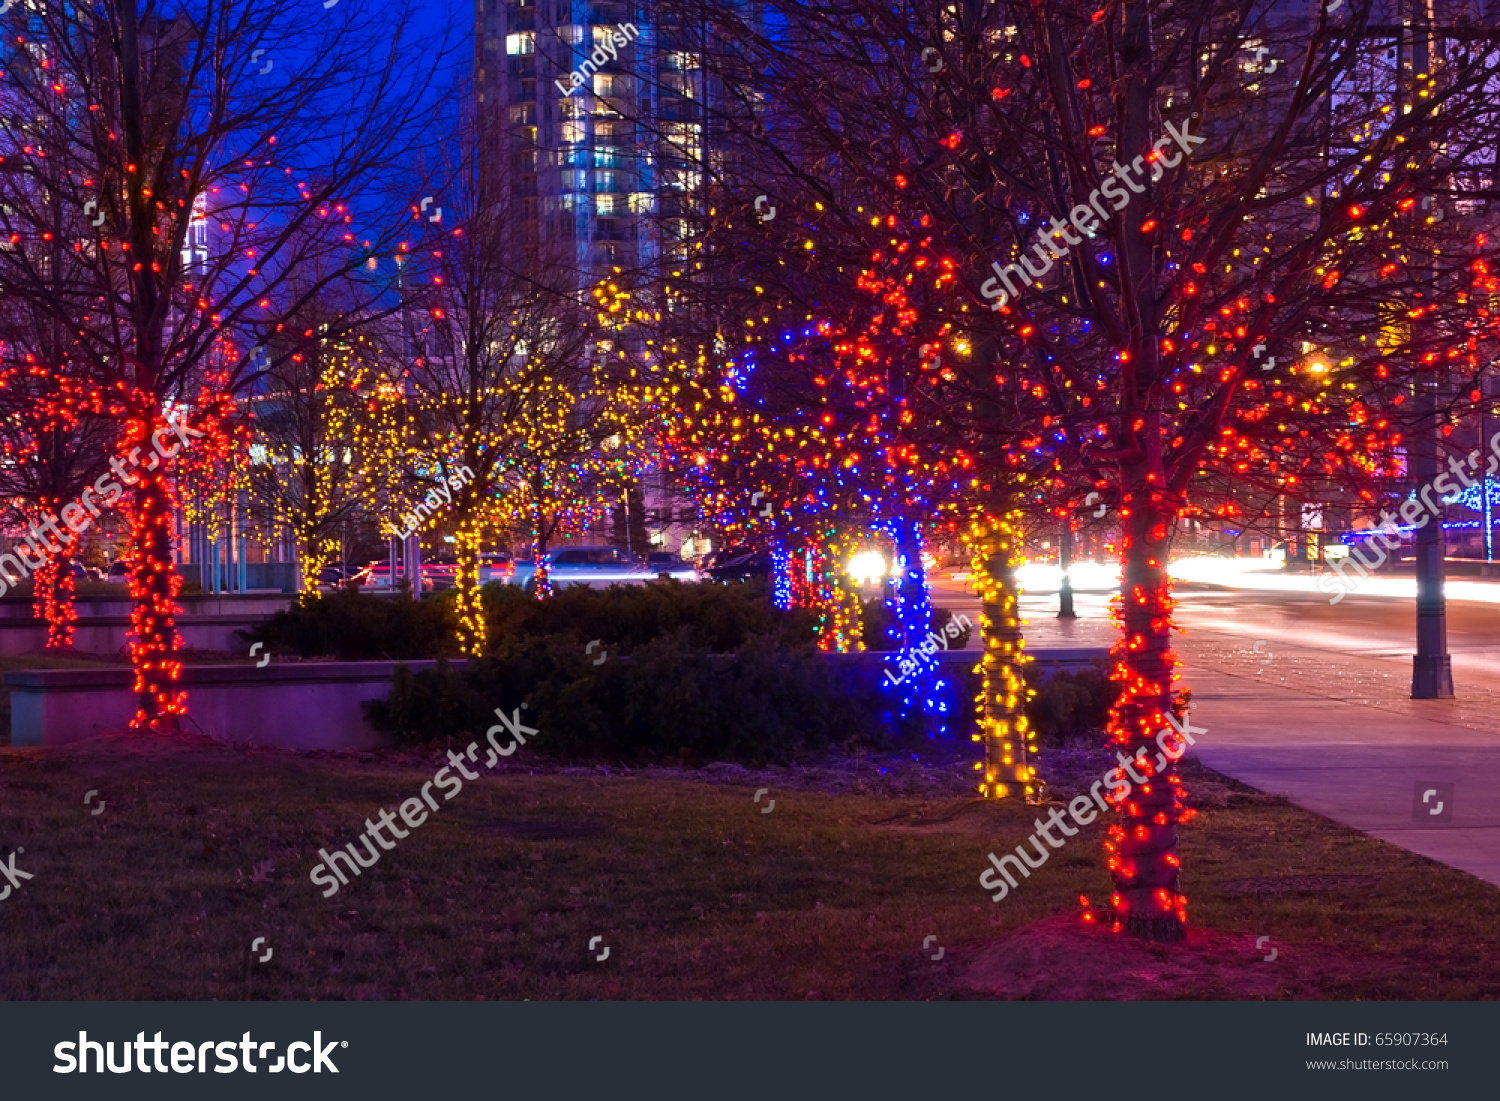 night shot of trees on street decorated with multicolor christmas lights garlands - Multicolor Christmas Lights